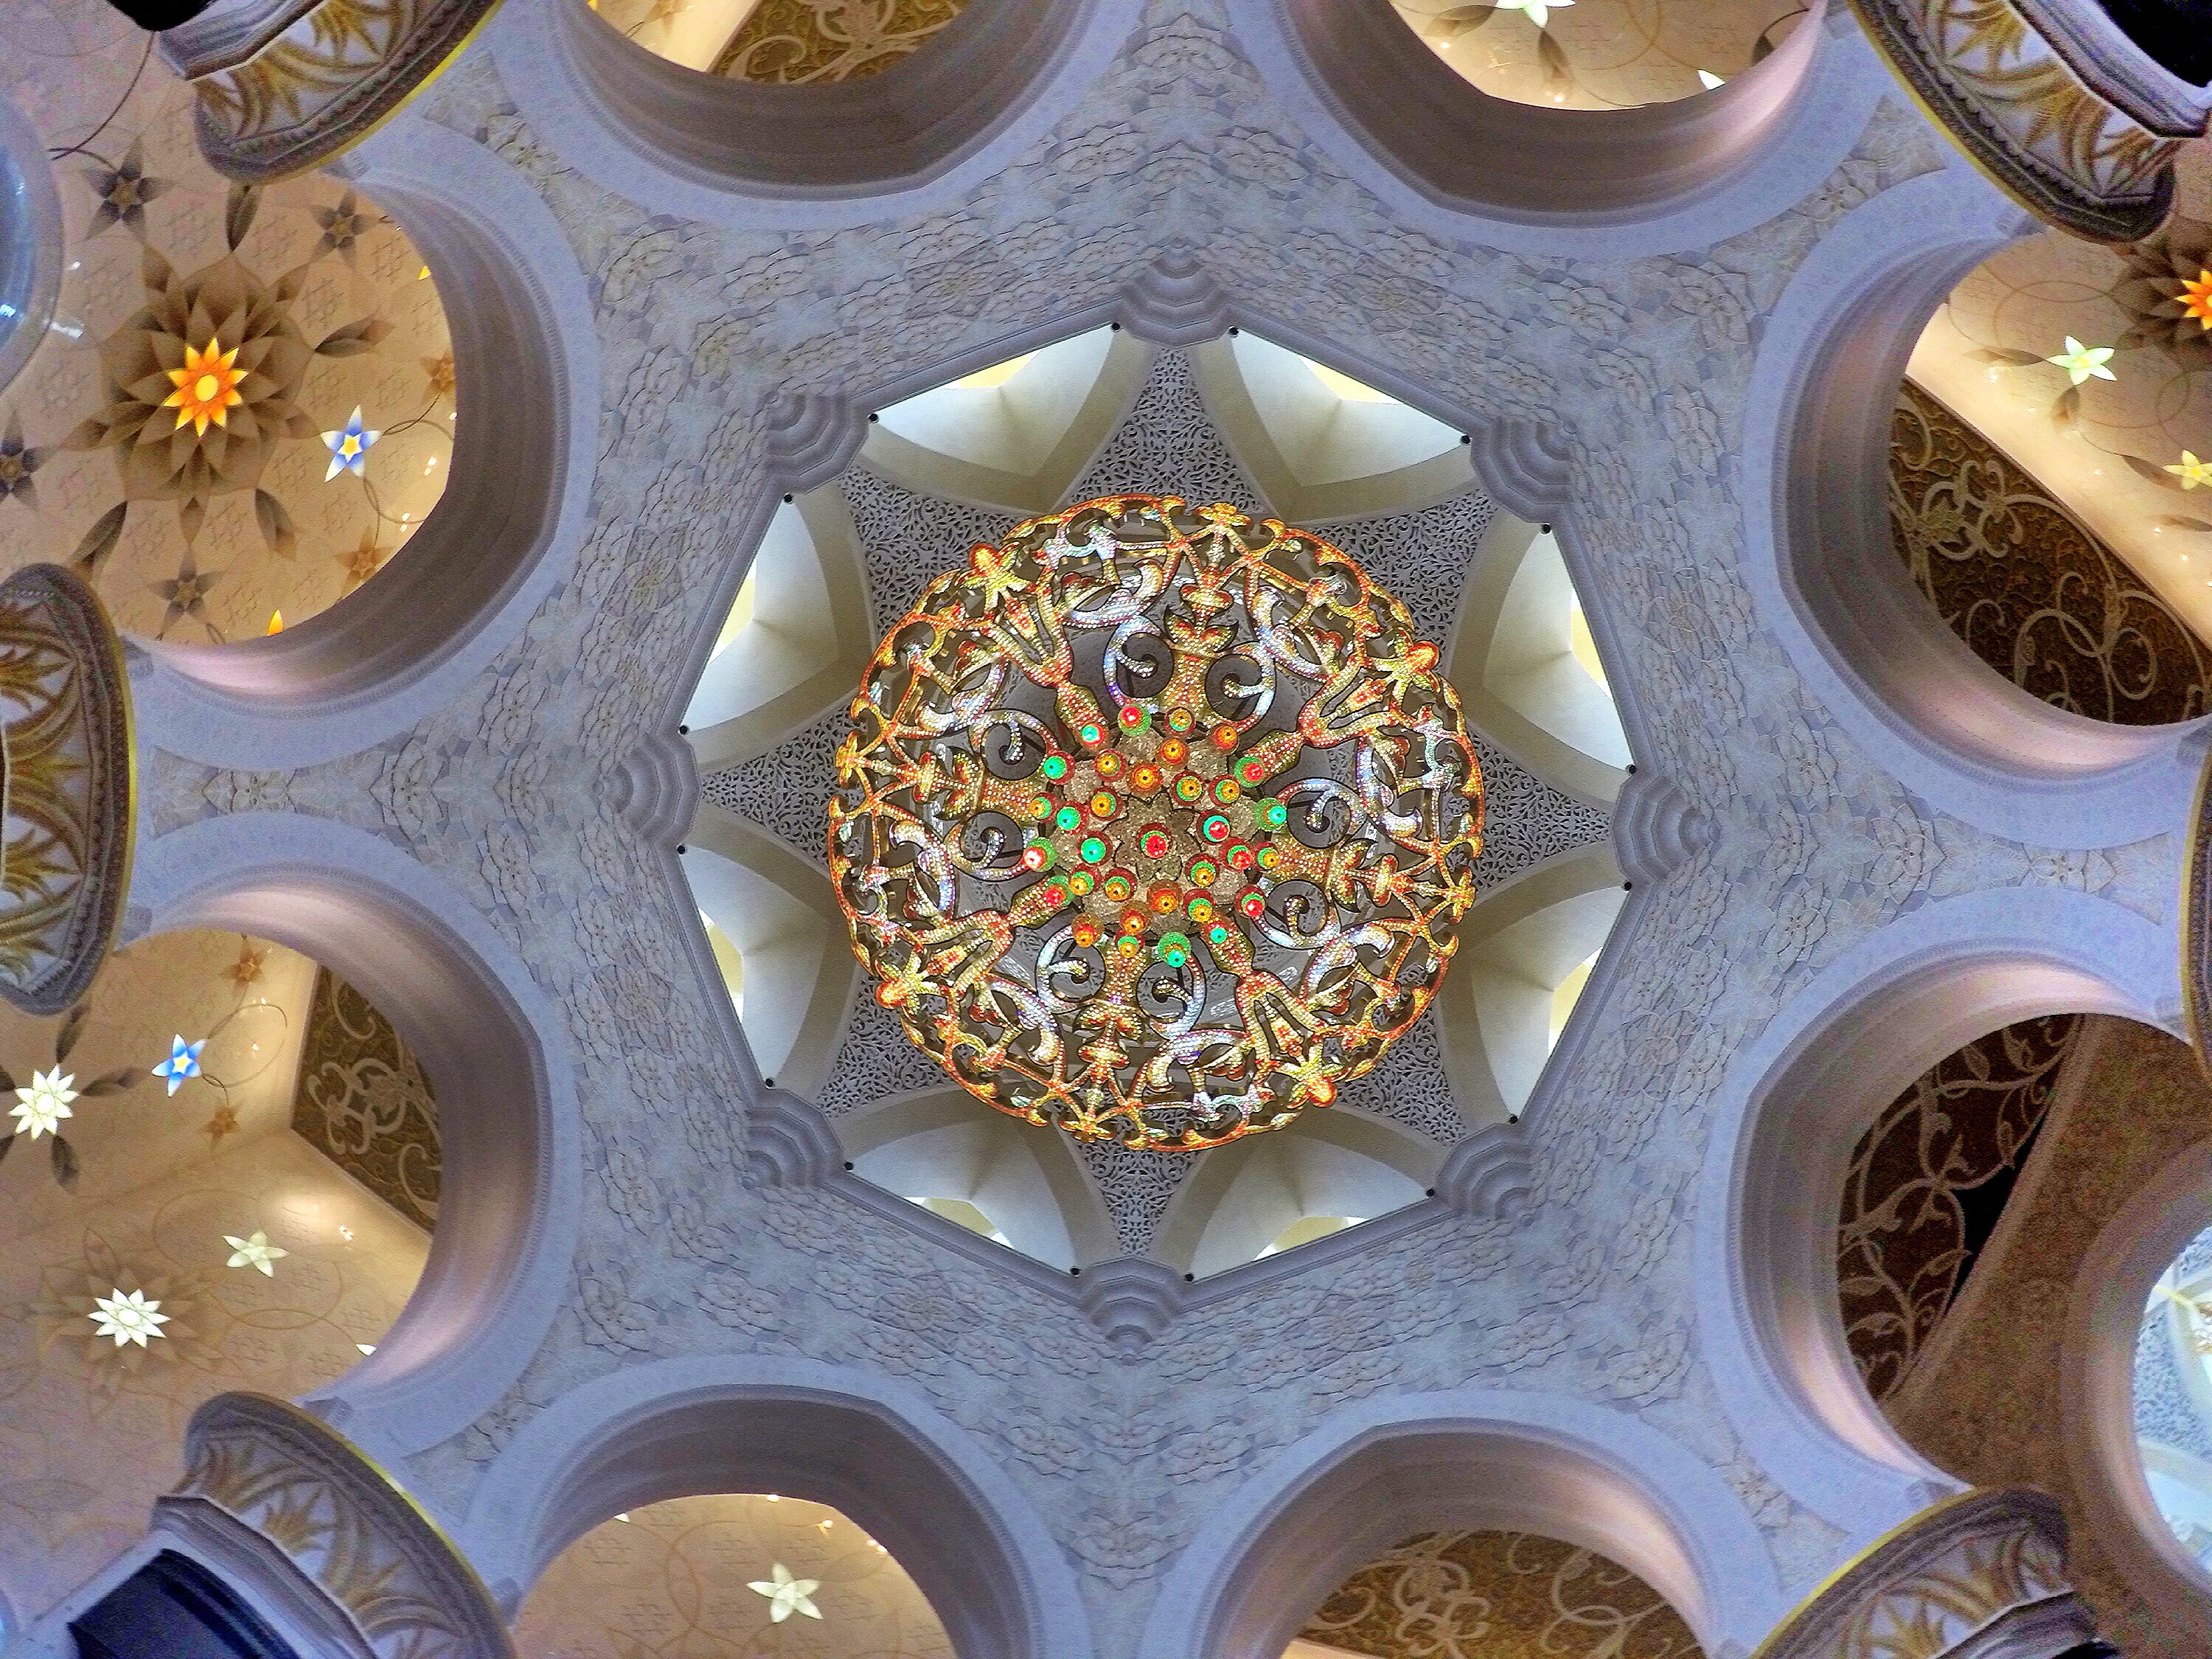 ceiling-inside-mosque-abu-dhabi